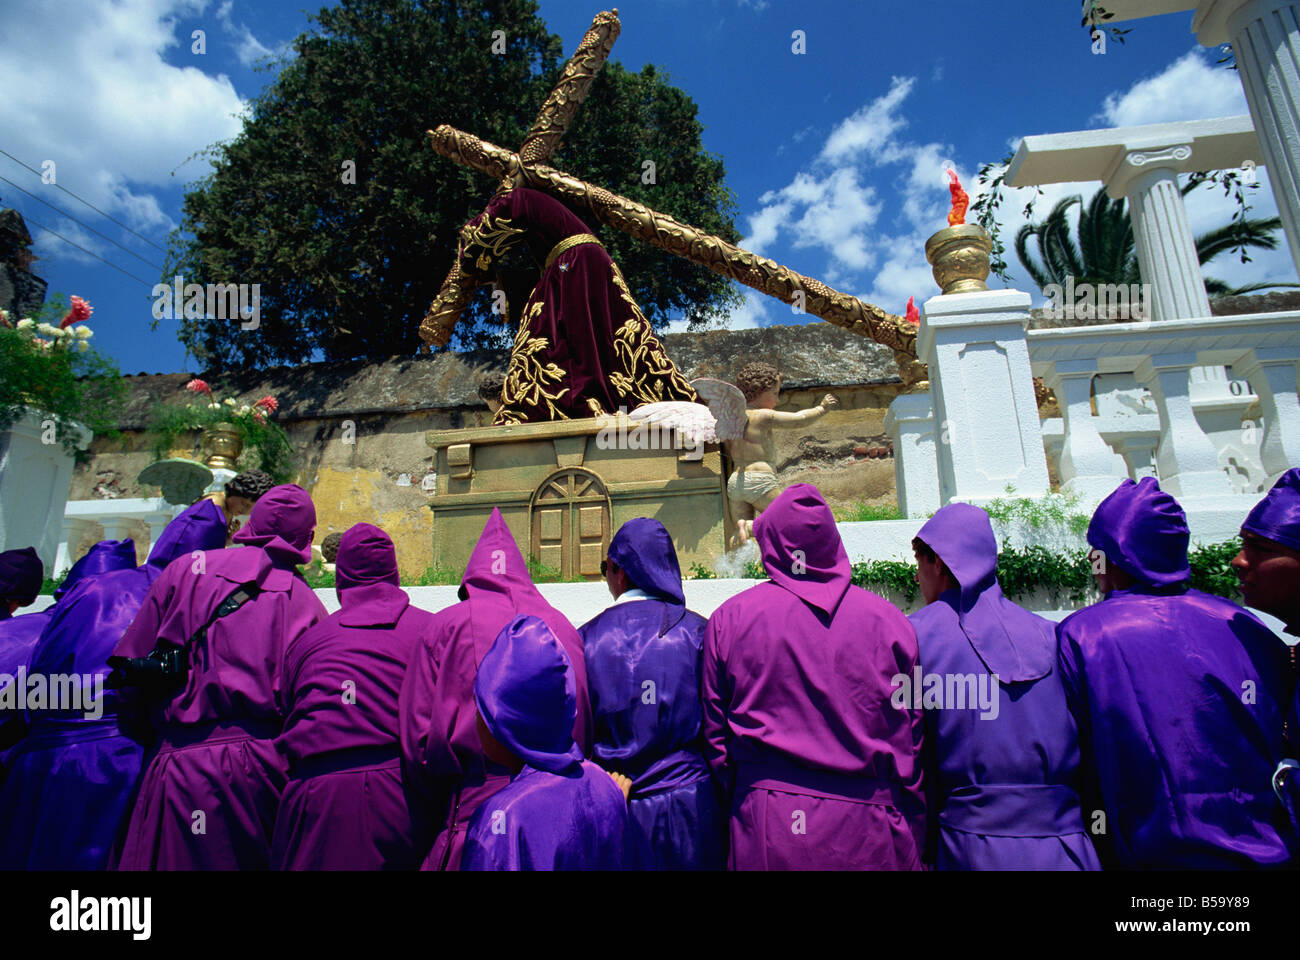 Men in purple robes carrying huge float on one of the famous Easter processions, Antigua, Guatemala, Central America - Stock Image